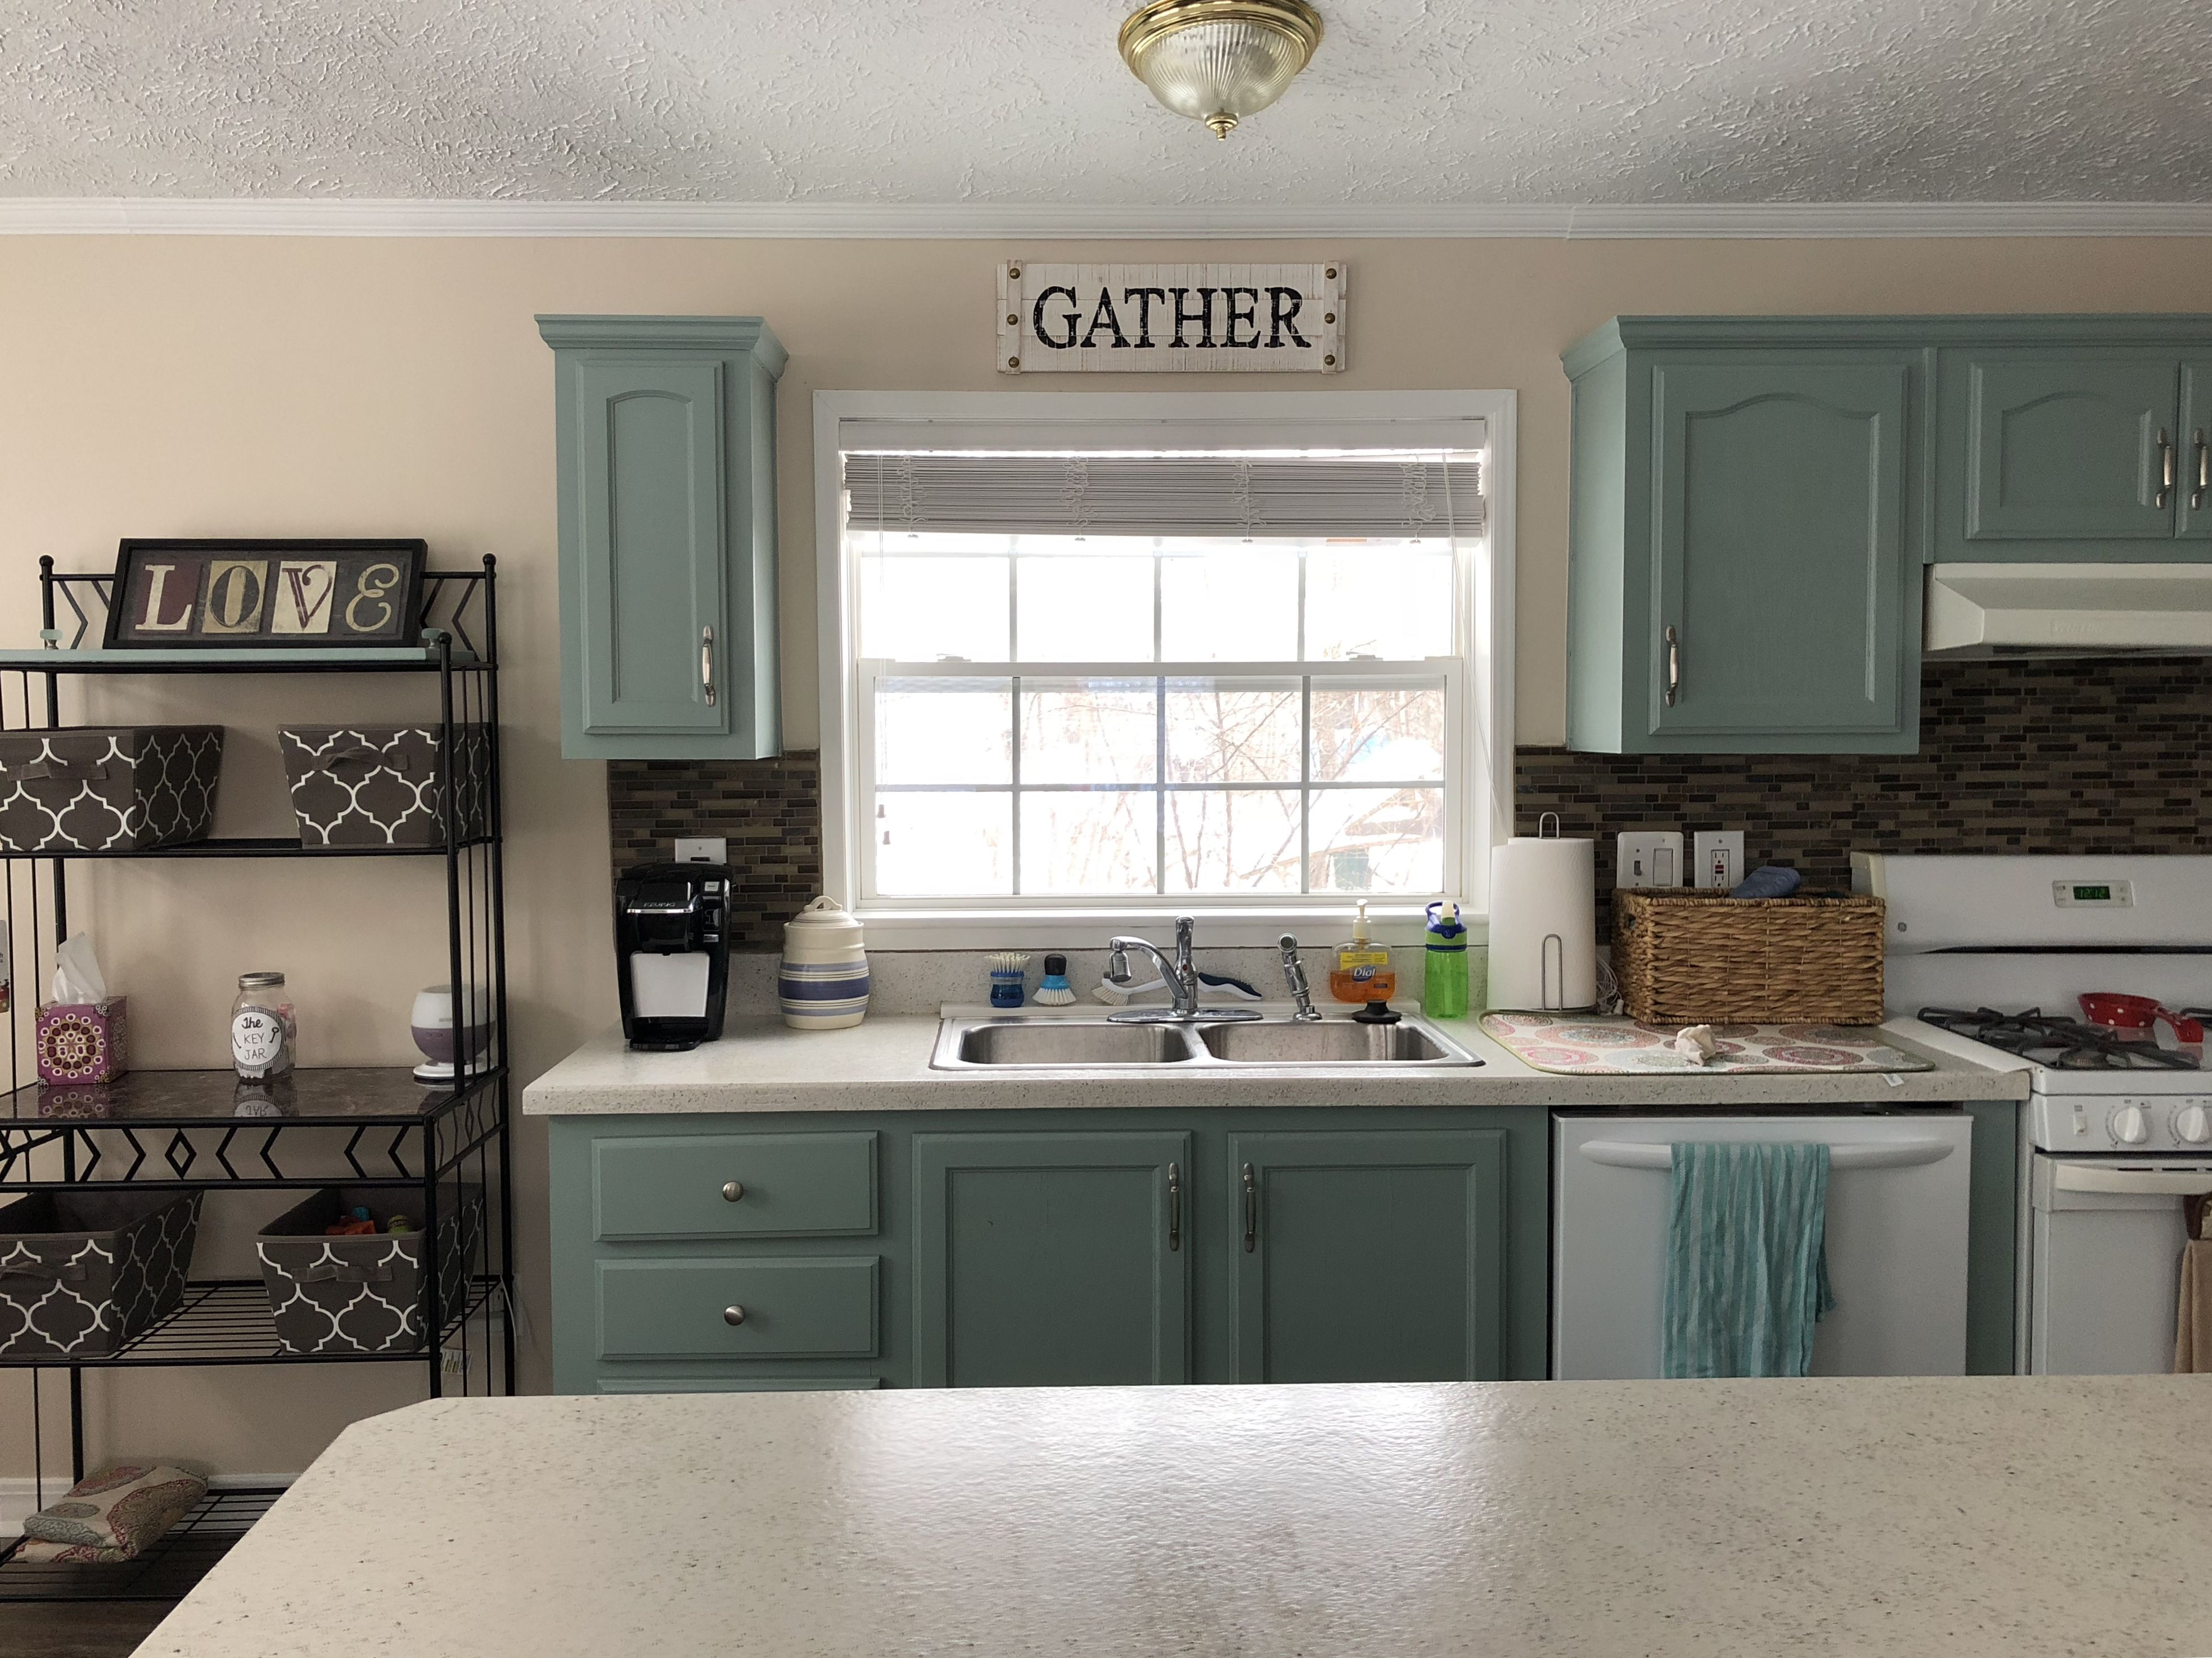 Daich spreadstone on the counters halcyon green by sherwin williams on the cupboards china doll by sherwin williams on the walls